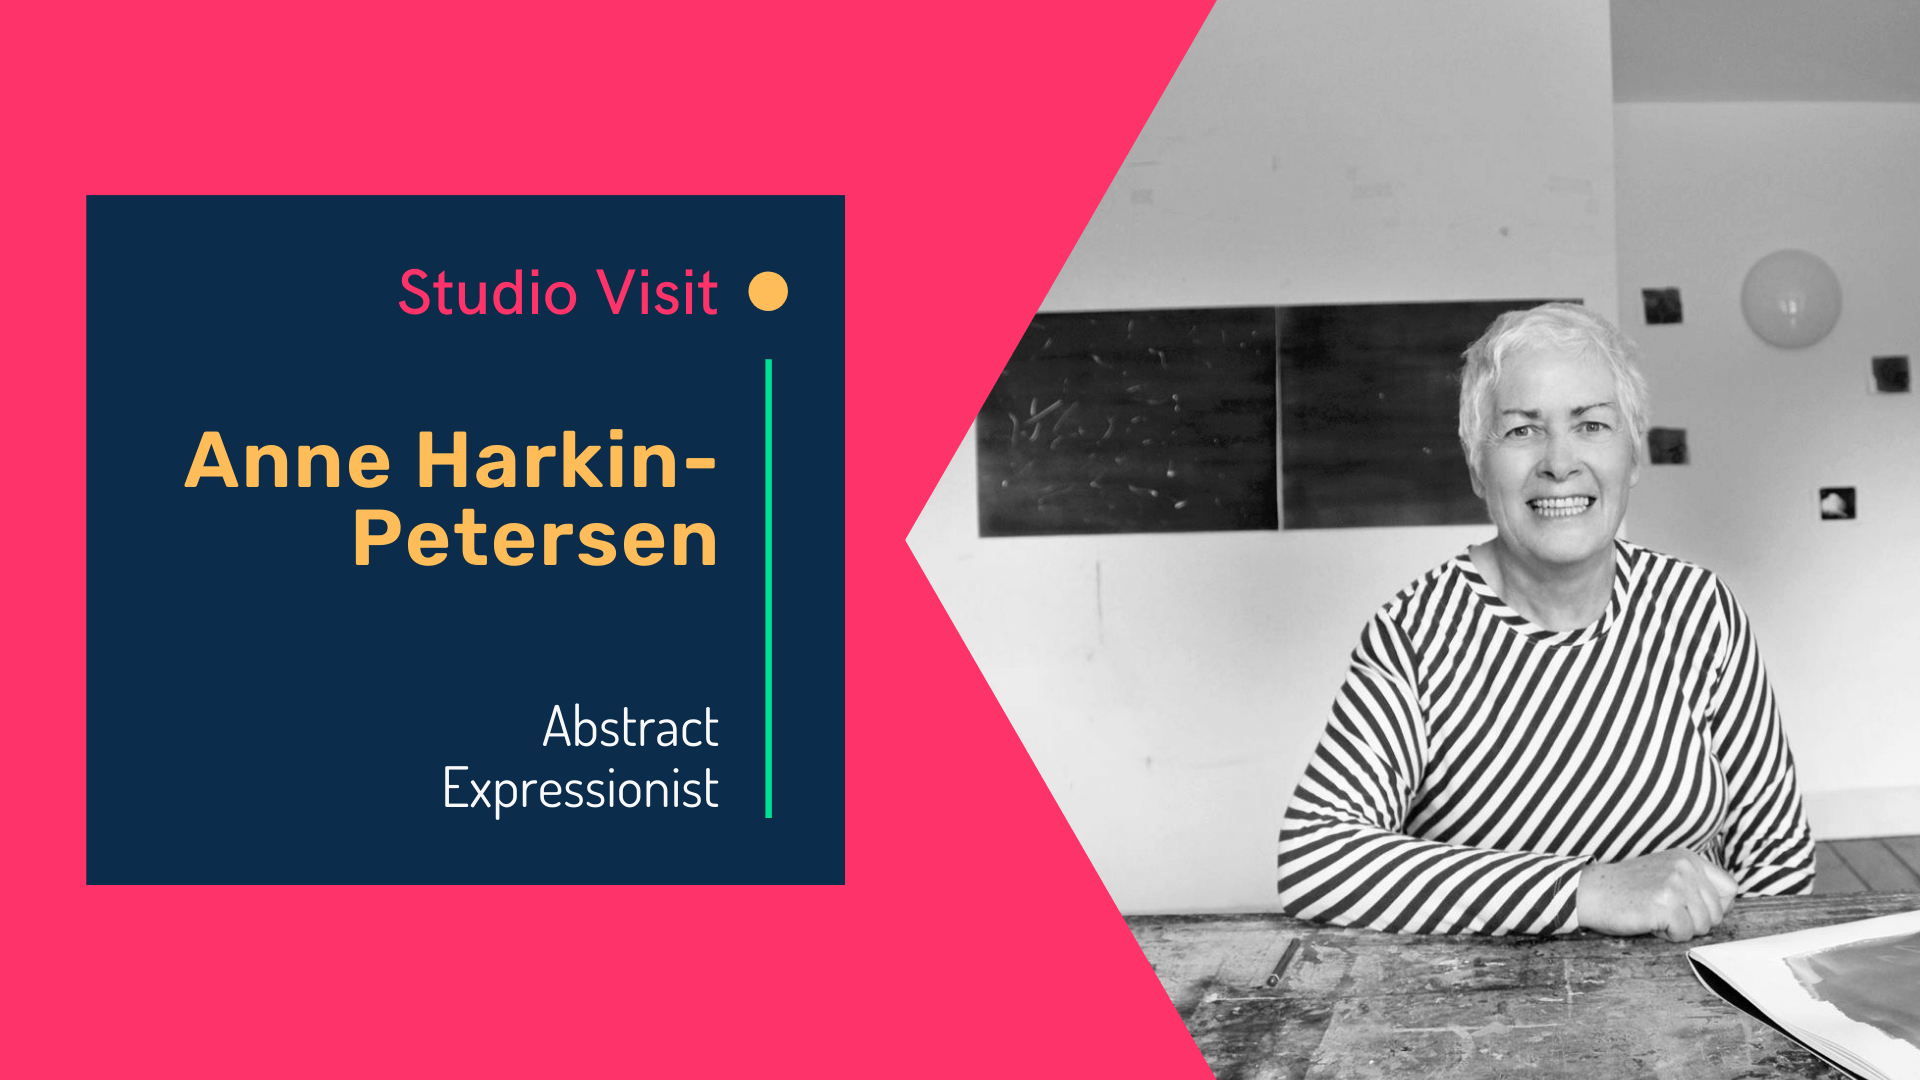 Studio visit with abstract expressionist, Anne Harkin-Petersen